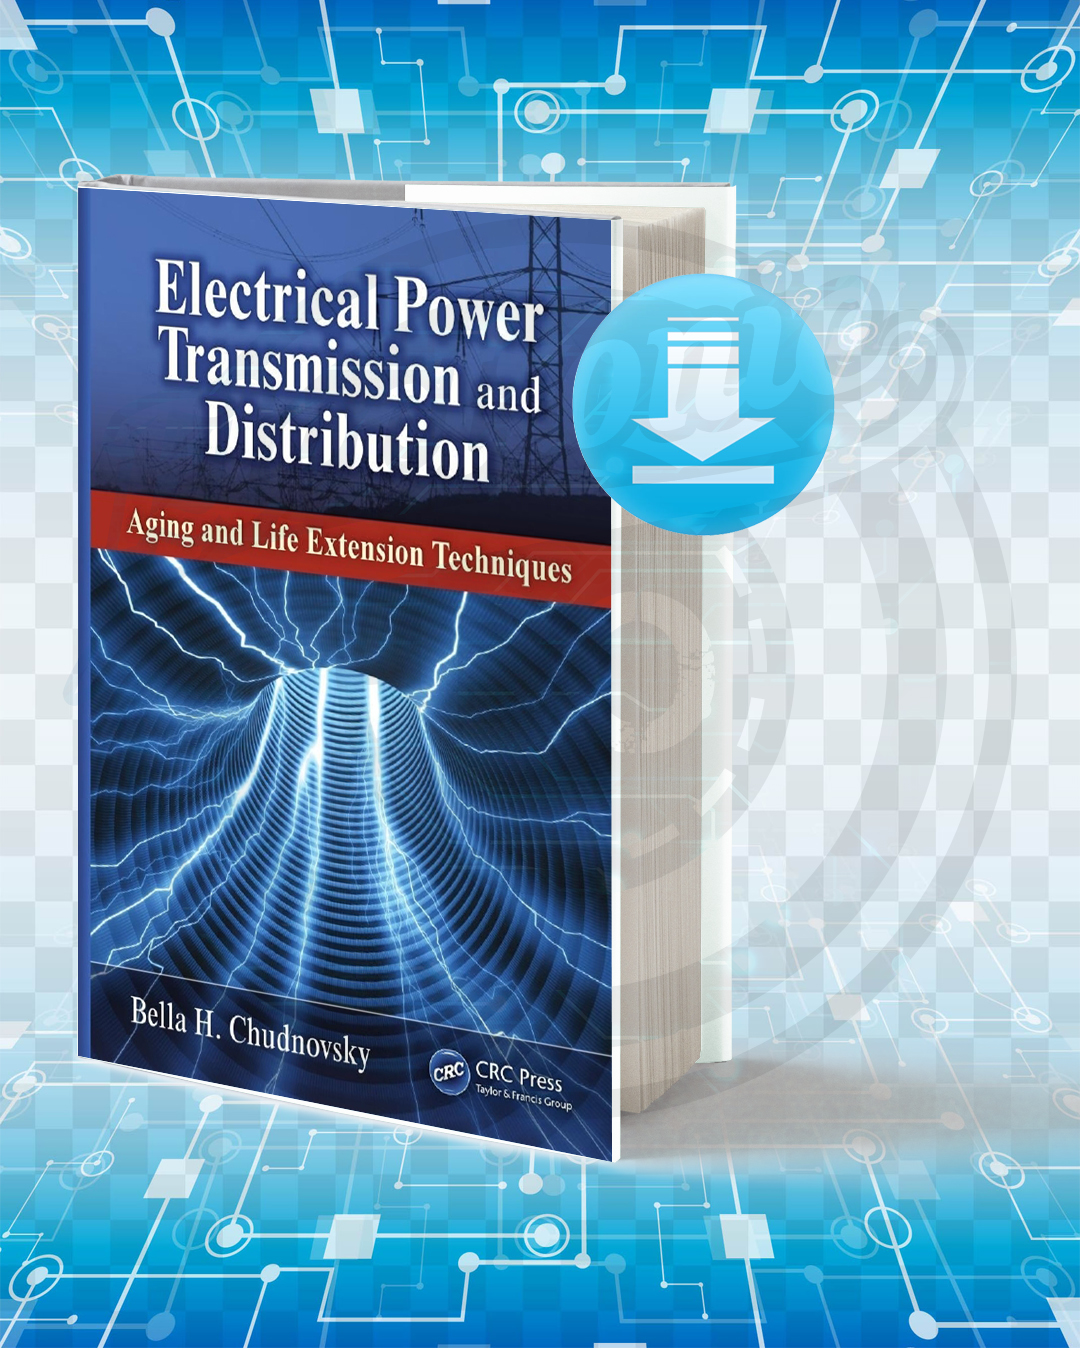 Free Book Electrical Power Transmission and Distribution pdf.